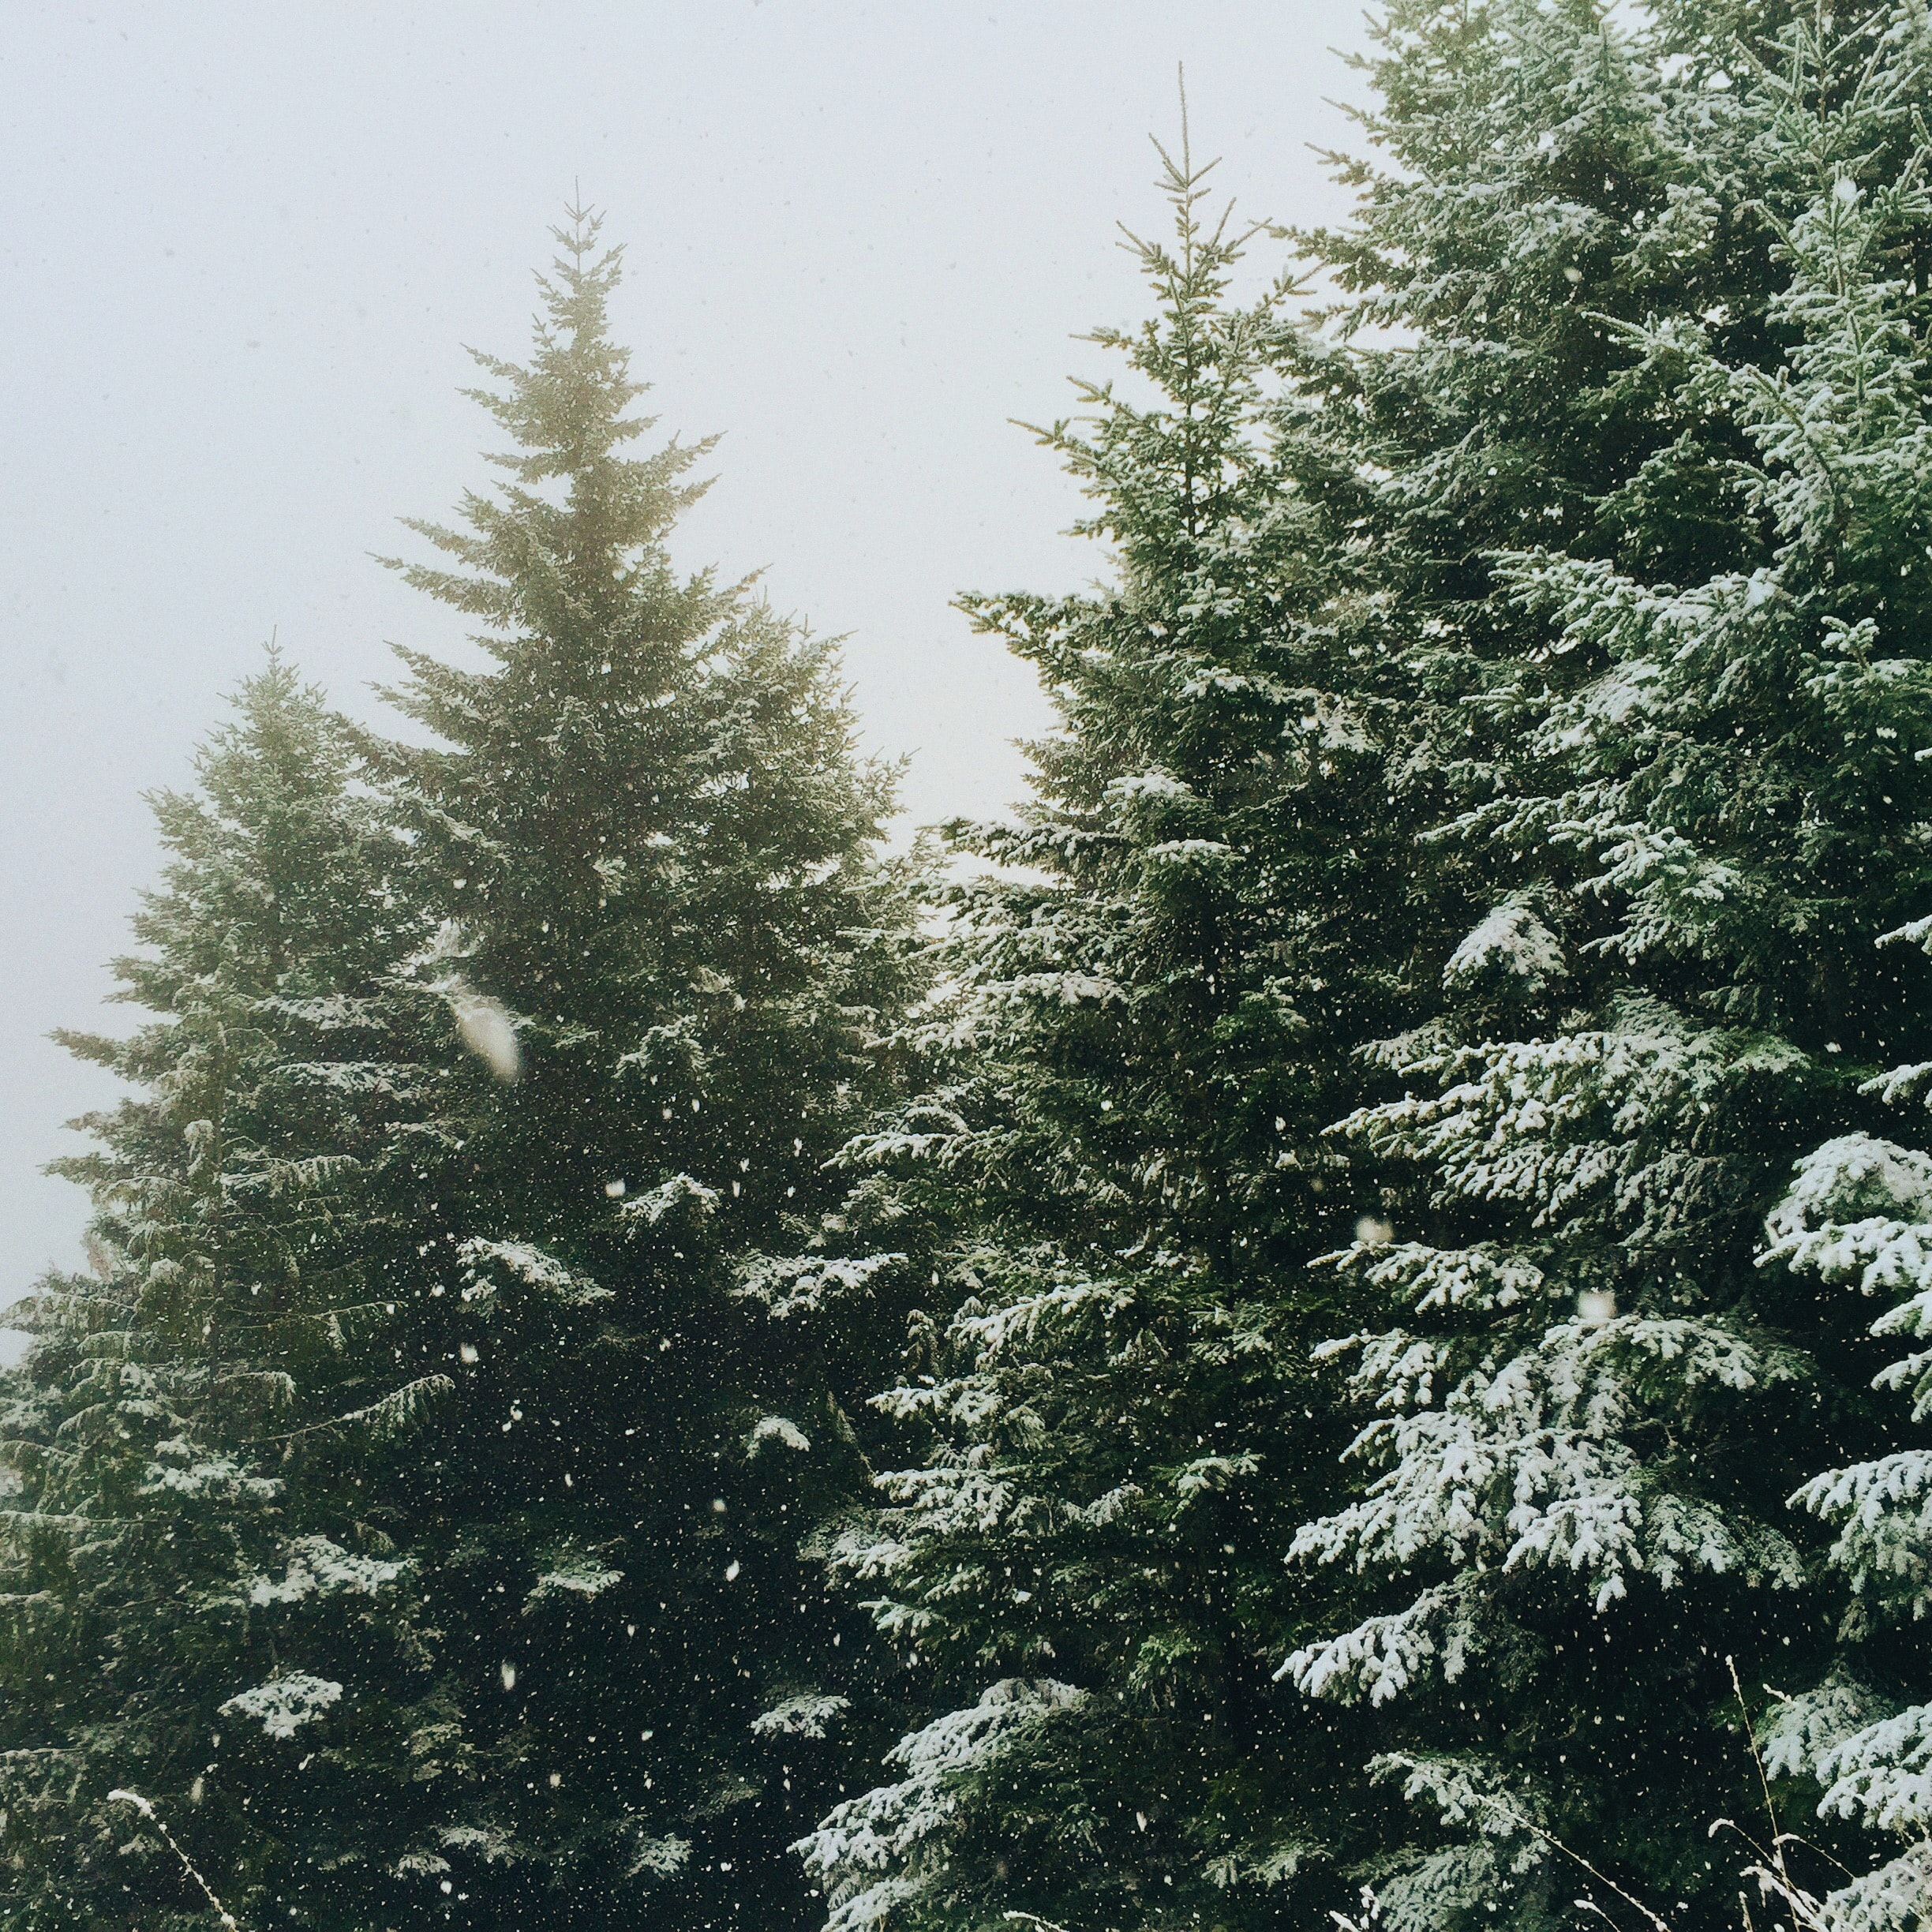 Winter spruce trees on a snowy winter day with a soft background